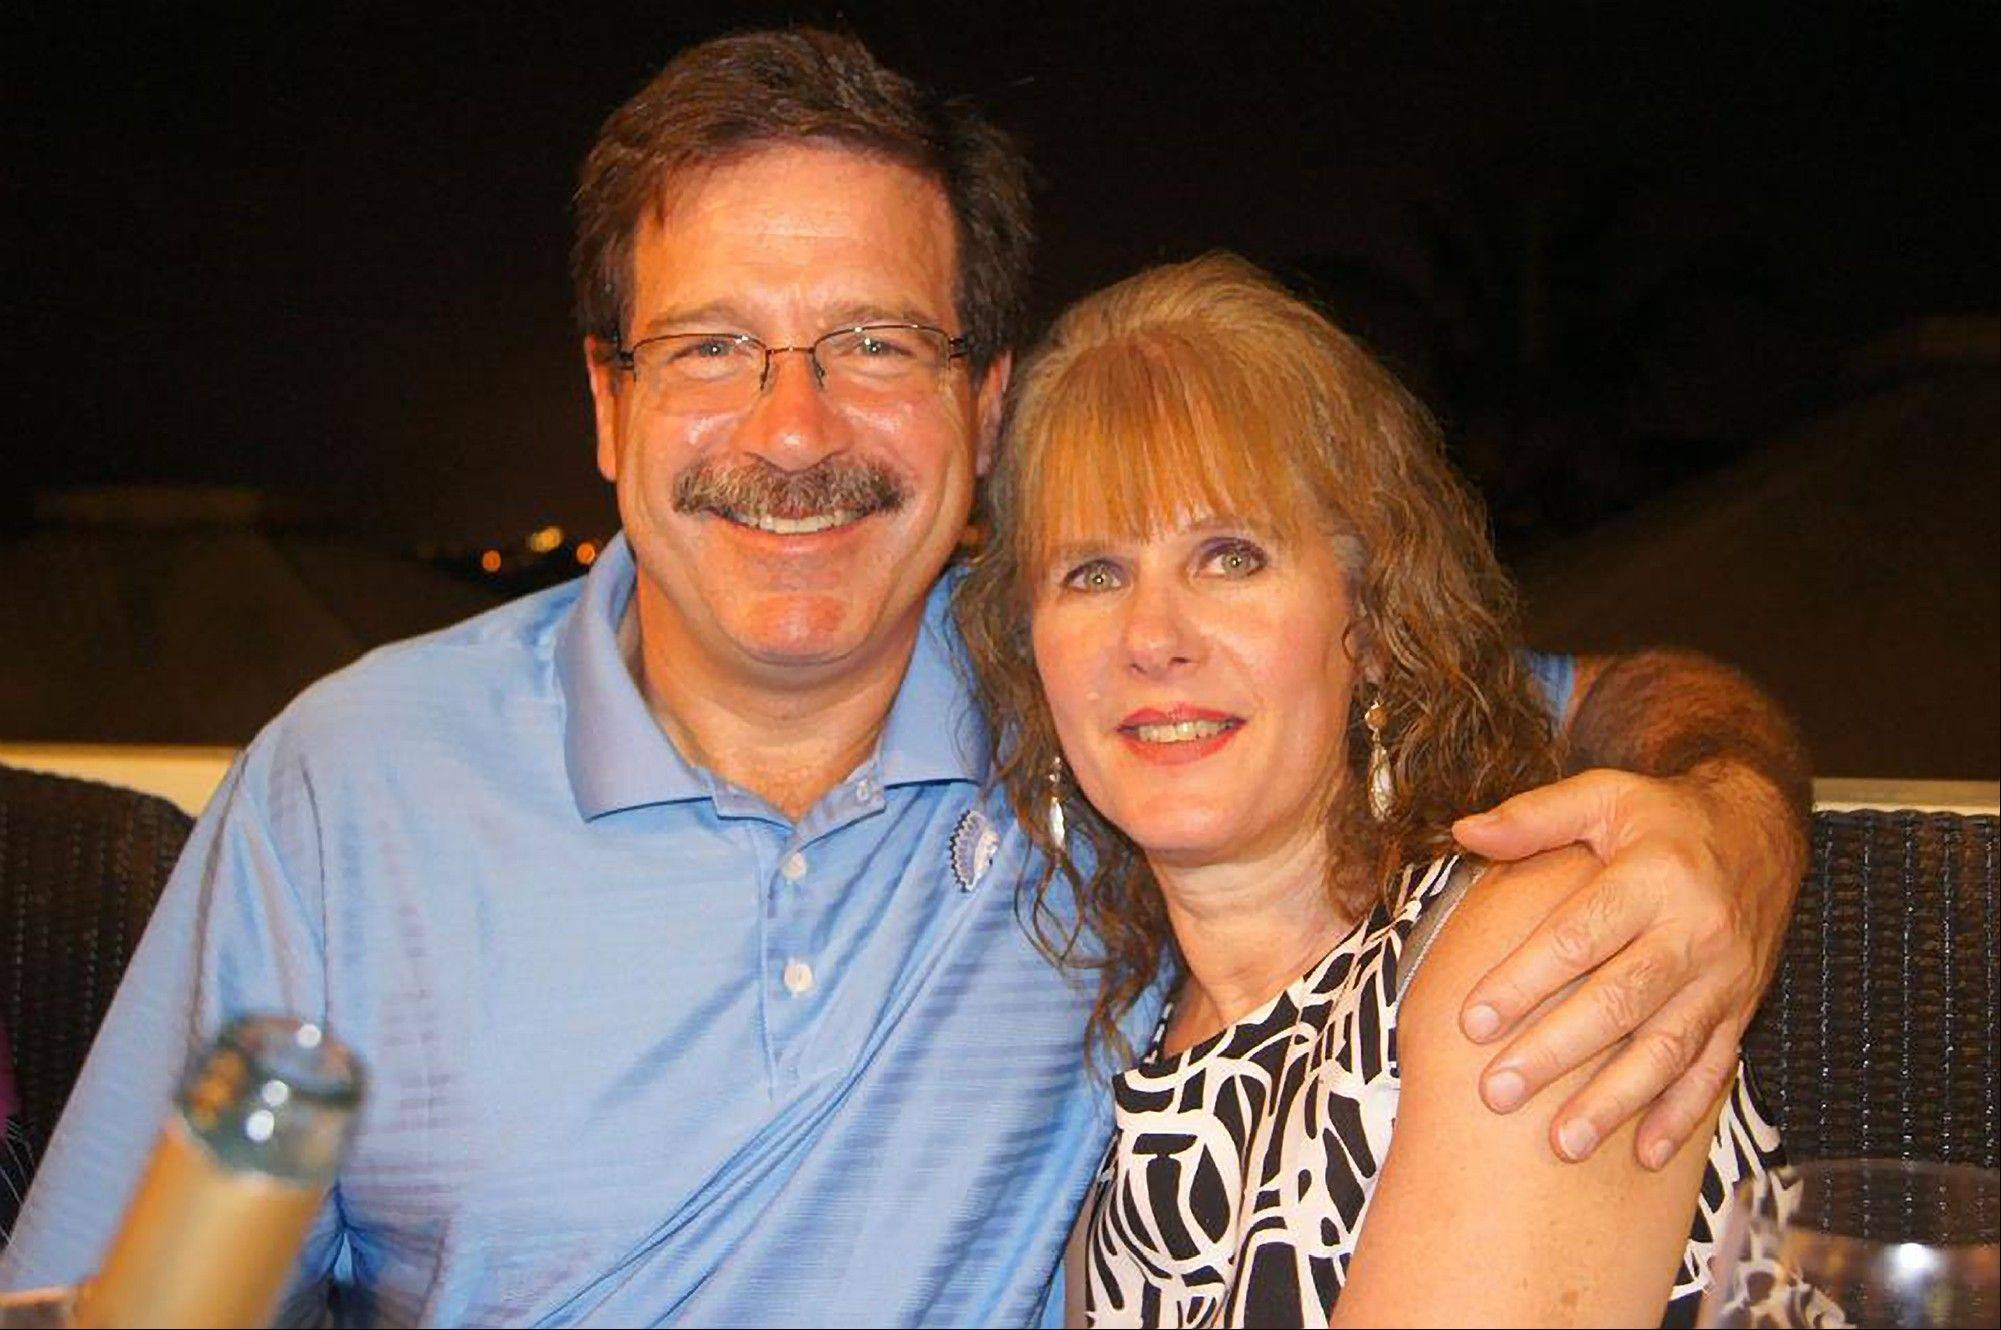 Mark Sherlach and his wife, school psychologist Mary Sherlach, pose for a photo. Mary Sherlach was killed by the gunman at Sandy Hook Elementary School in Newtown, Conn., Friday.